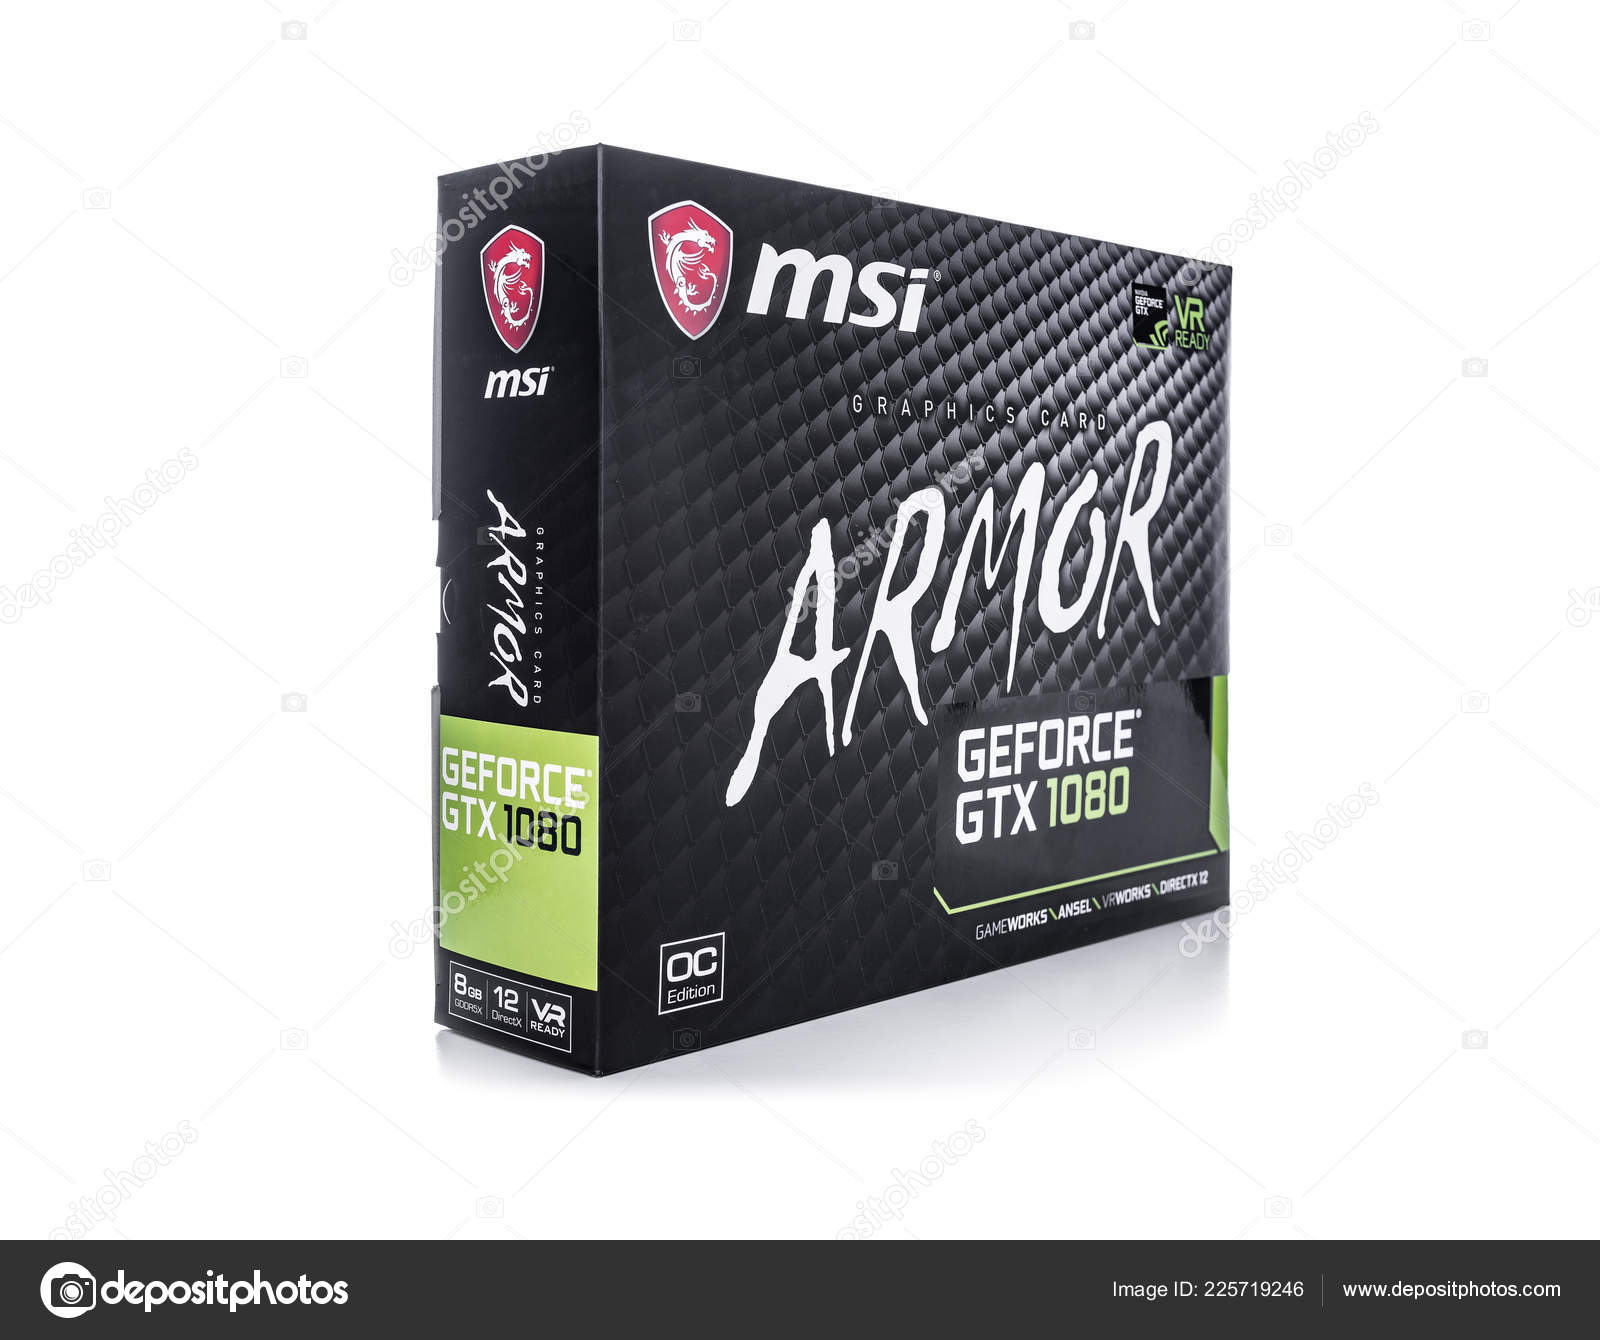 Box of Graphic card MSI GeForce GTX1080 ARMOR on white background